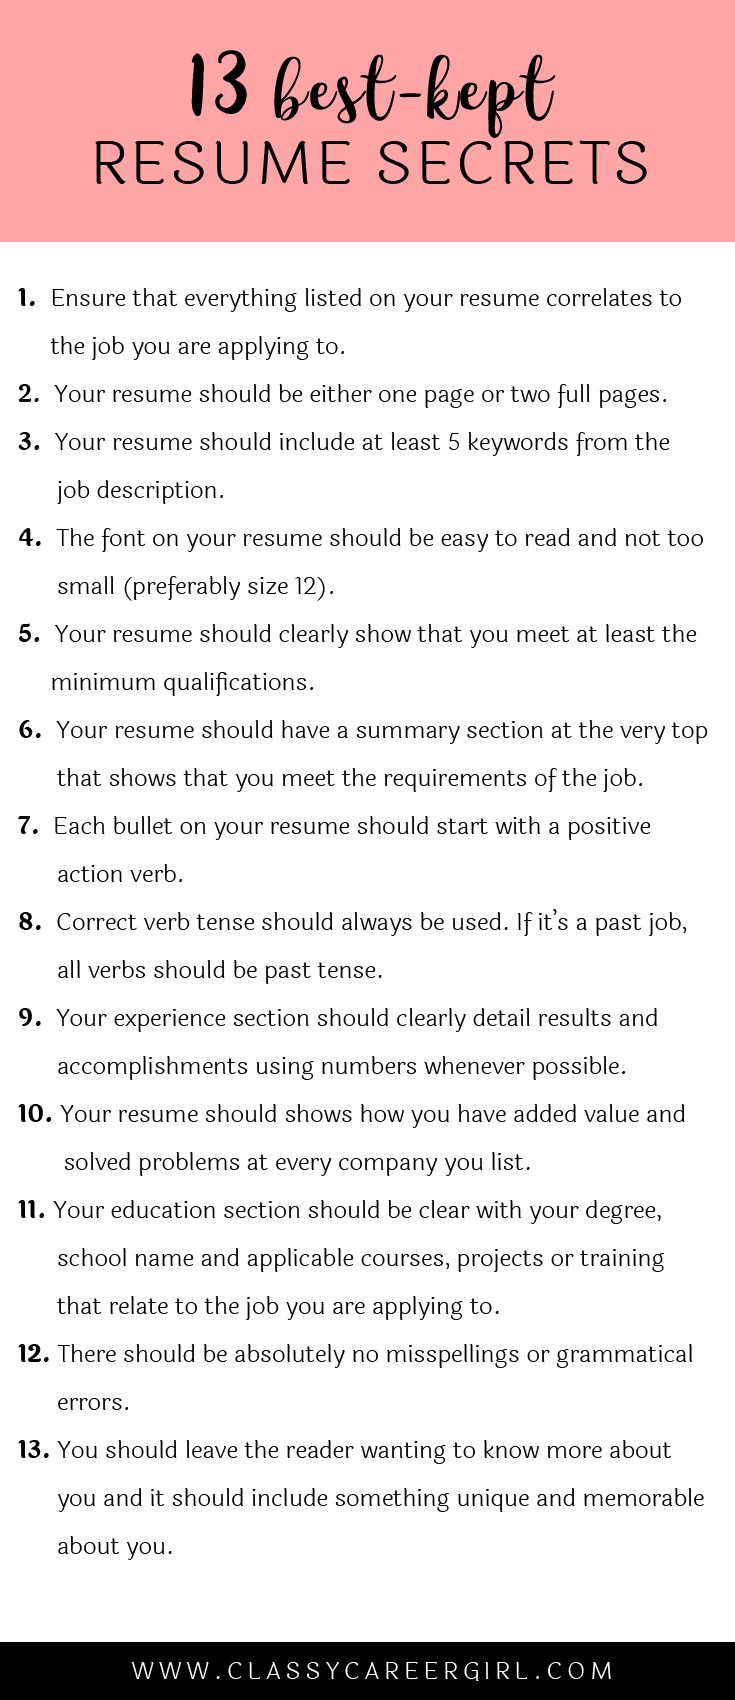 Opposenewapstandardsus  Splendid  Ideas About Resume On Pinterest  Cv Format Resume Cv And  With Outstanding Some Hiring Managers Will Toss Your Resume Out If You Dont Know These  With Extraordinary Cv Resume Template Also General Labor Resume In Addition Examples Of Skills For Resume And Good Objectives For A Resume As Well As Good Font For Resume Additionally Graphic Resume From Pinterestcom With Opposenewapstandardsus  Outstanding  Ideas About Resume On Pinterest  Cv Format Resume Cv And  With Extraordinary Some Hiring Managers Will Toss Your Resume Out If You Dont Know These  And Splendid Cv Resume Template Also General Labor Resume In Addition Examples Of Skills For Resume From Pinterestcom